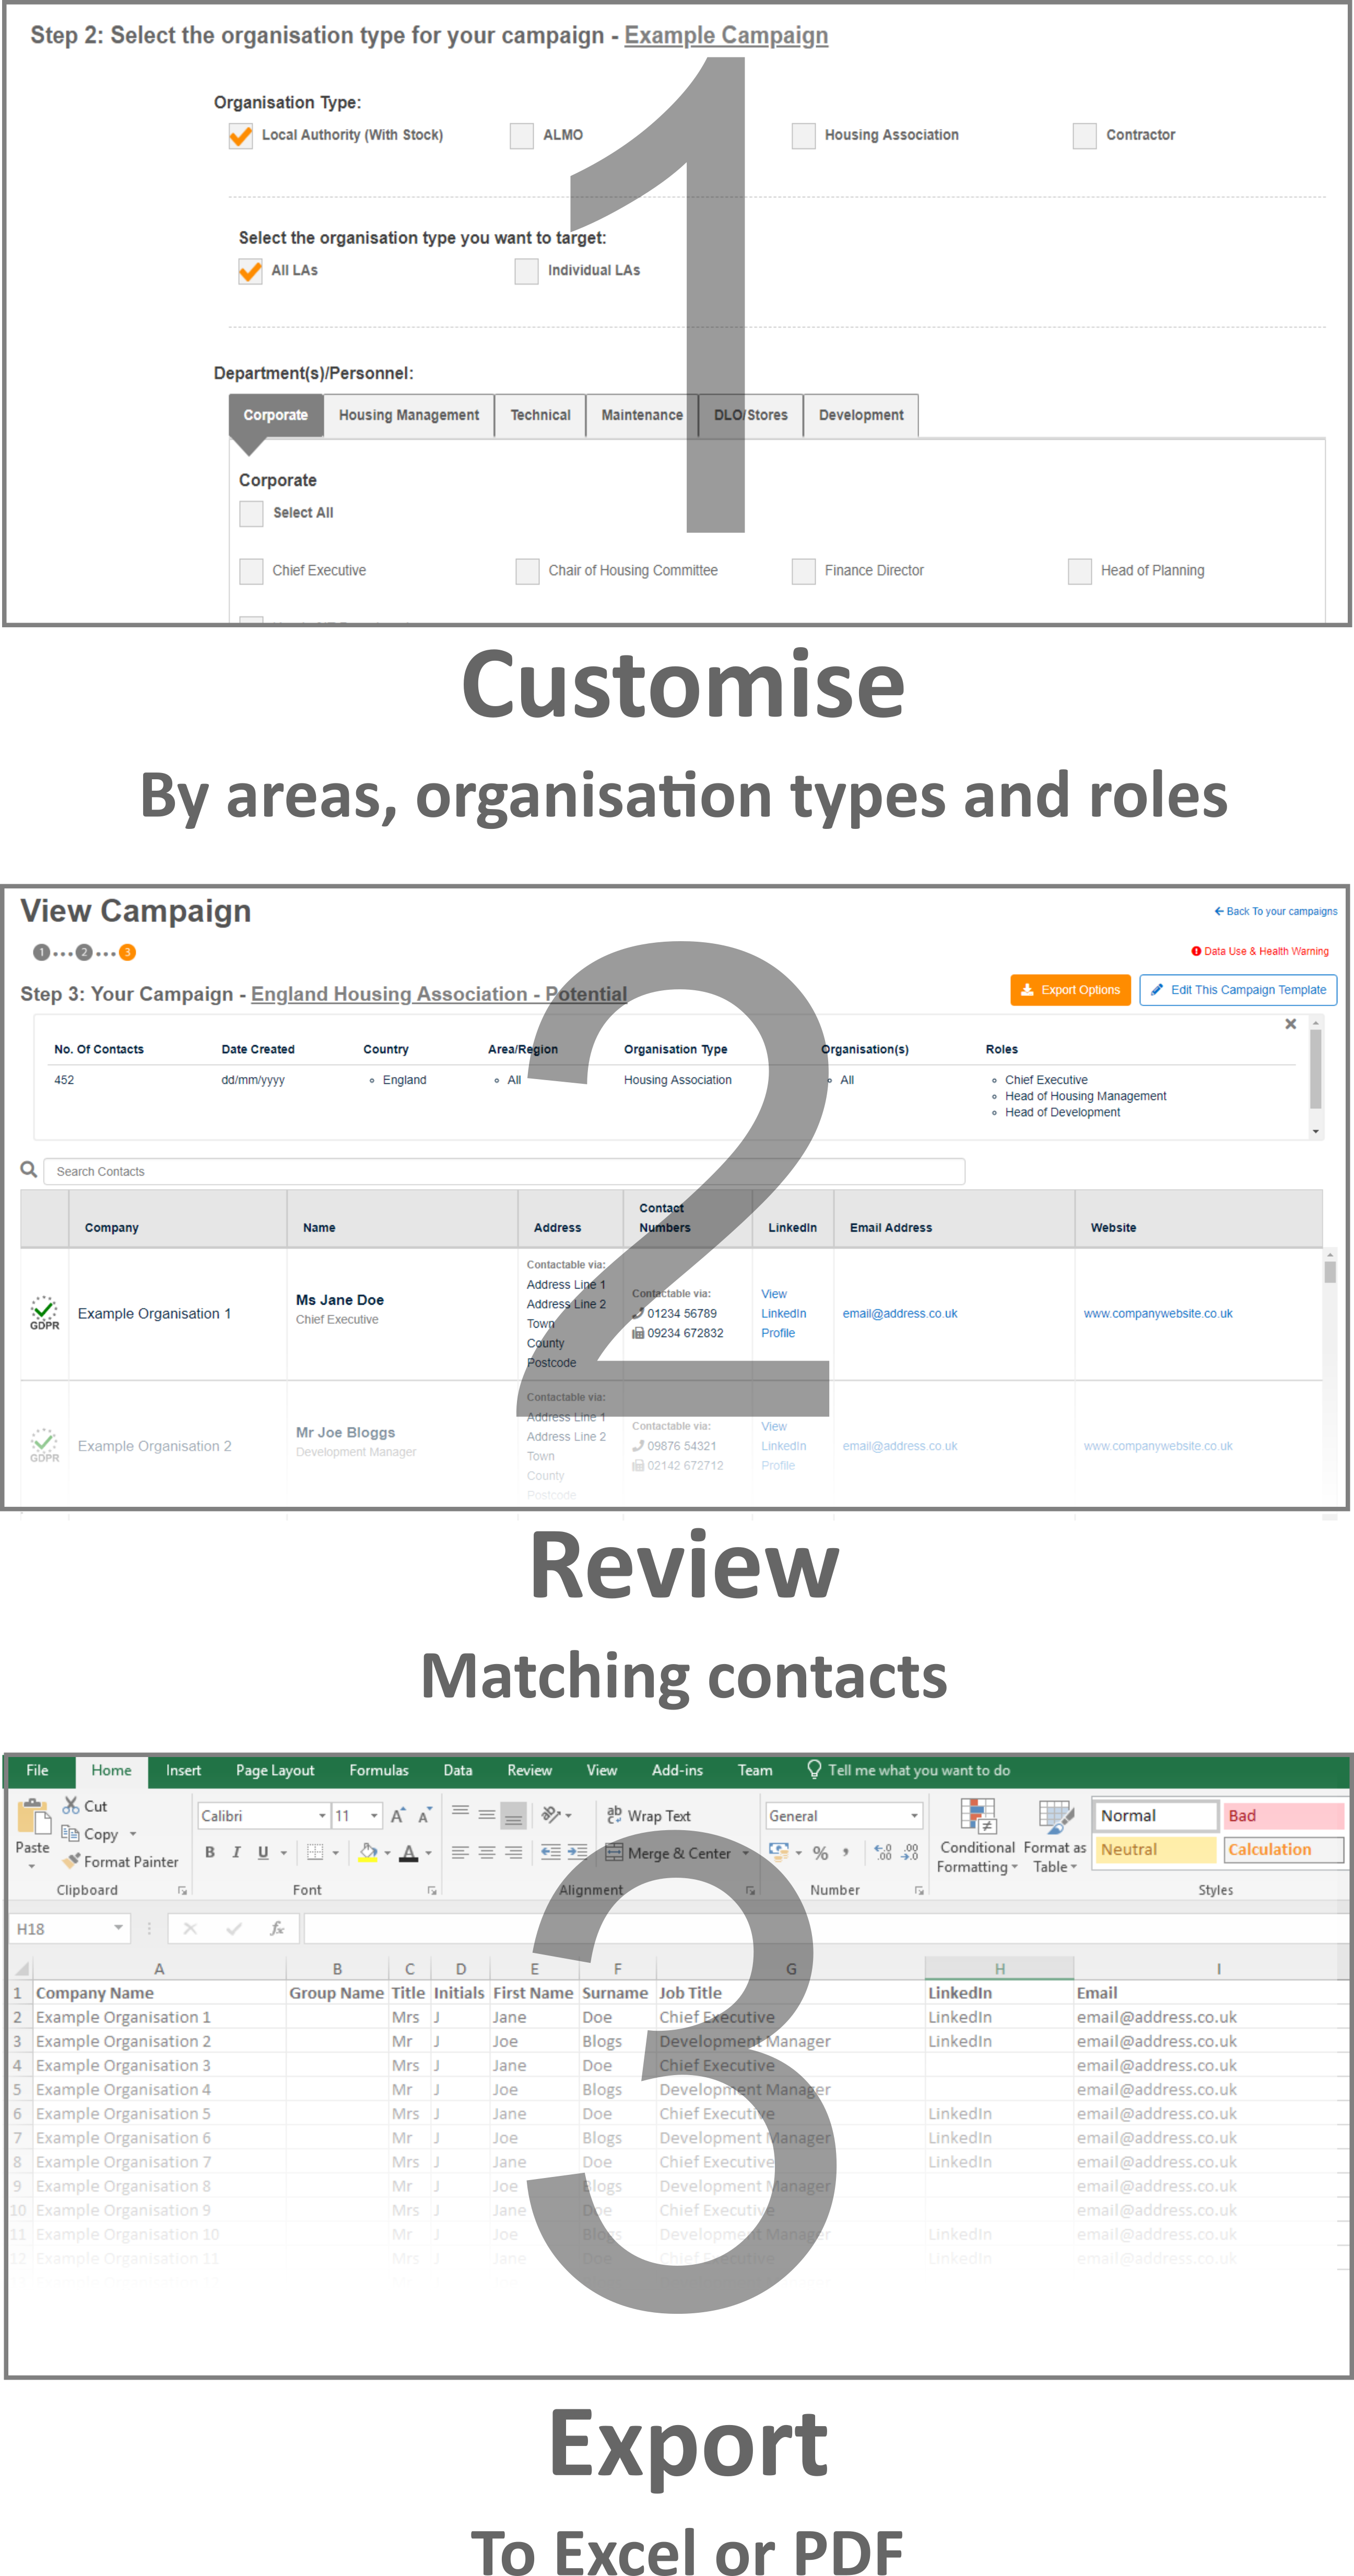 Marketing - Customise and Review then Export each report